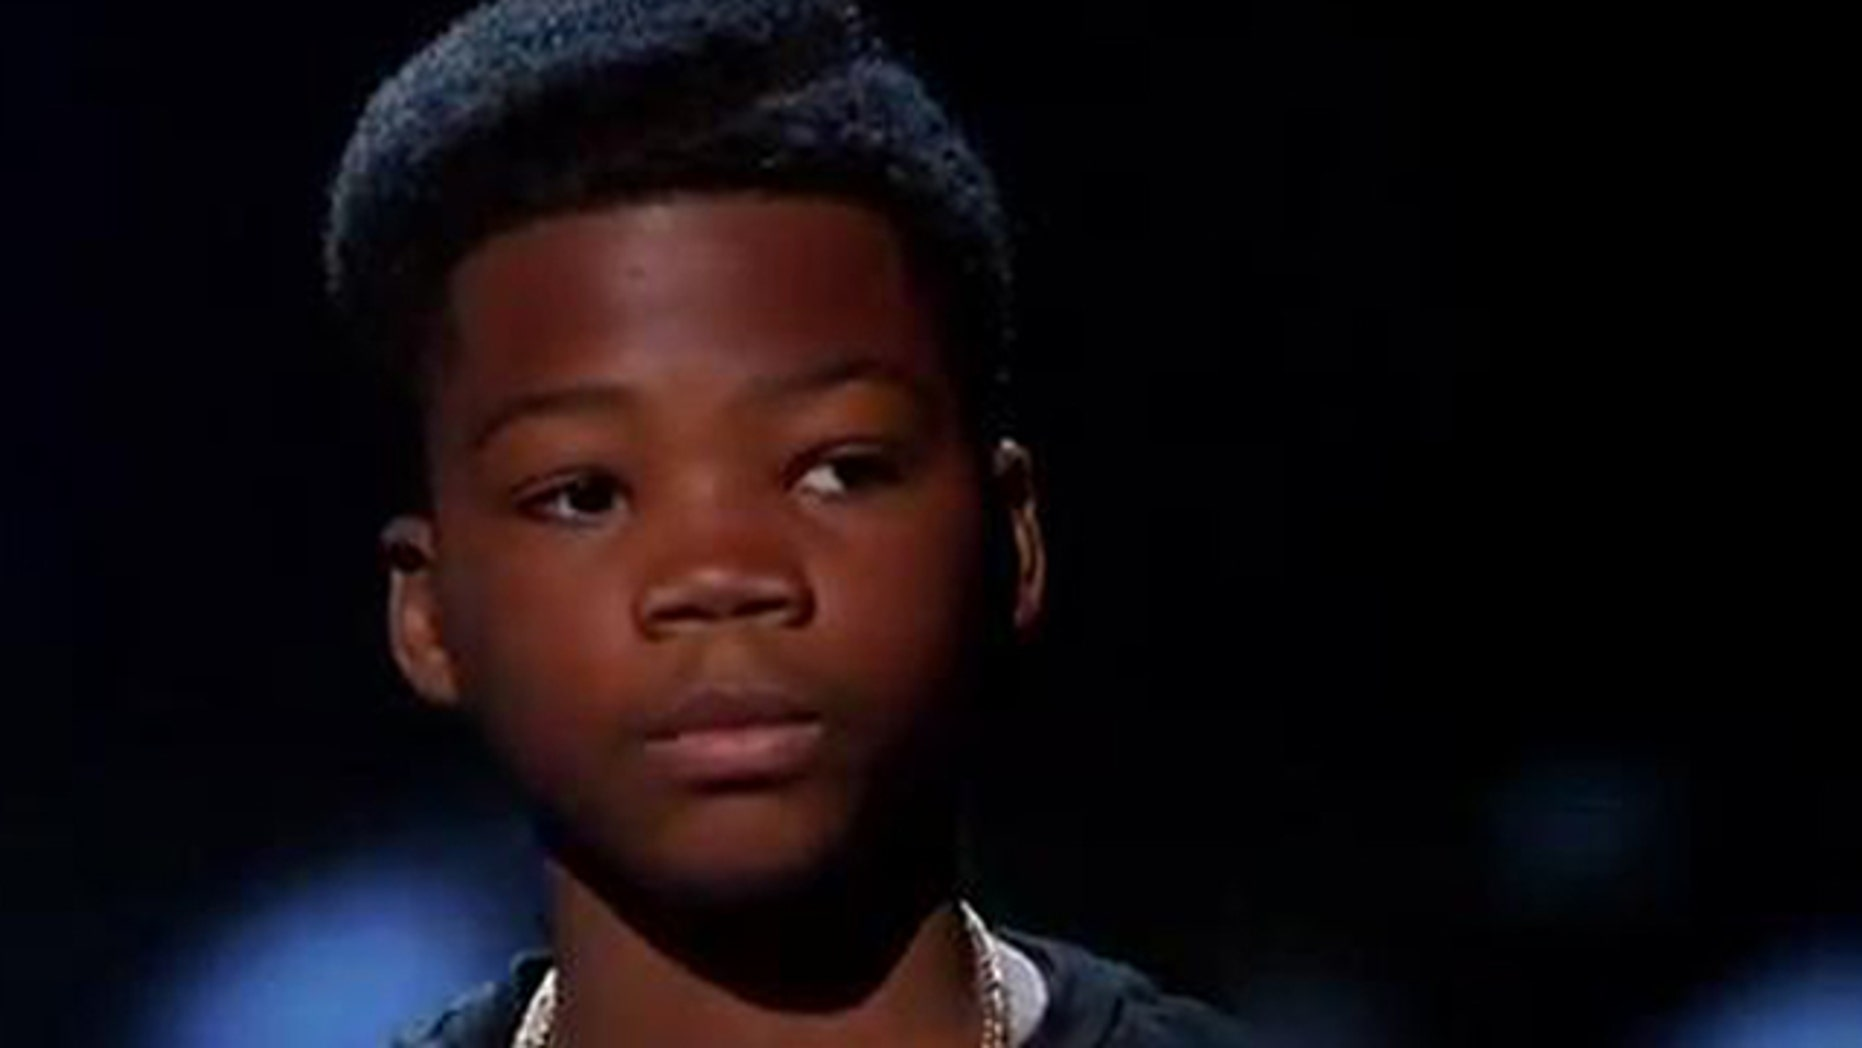 Dec. 1, 2011: Astro learns he has been eliminated off the X Factor Thursday night.